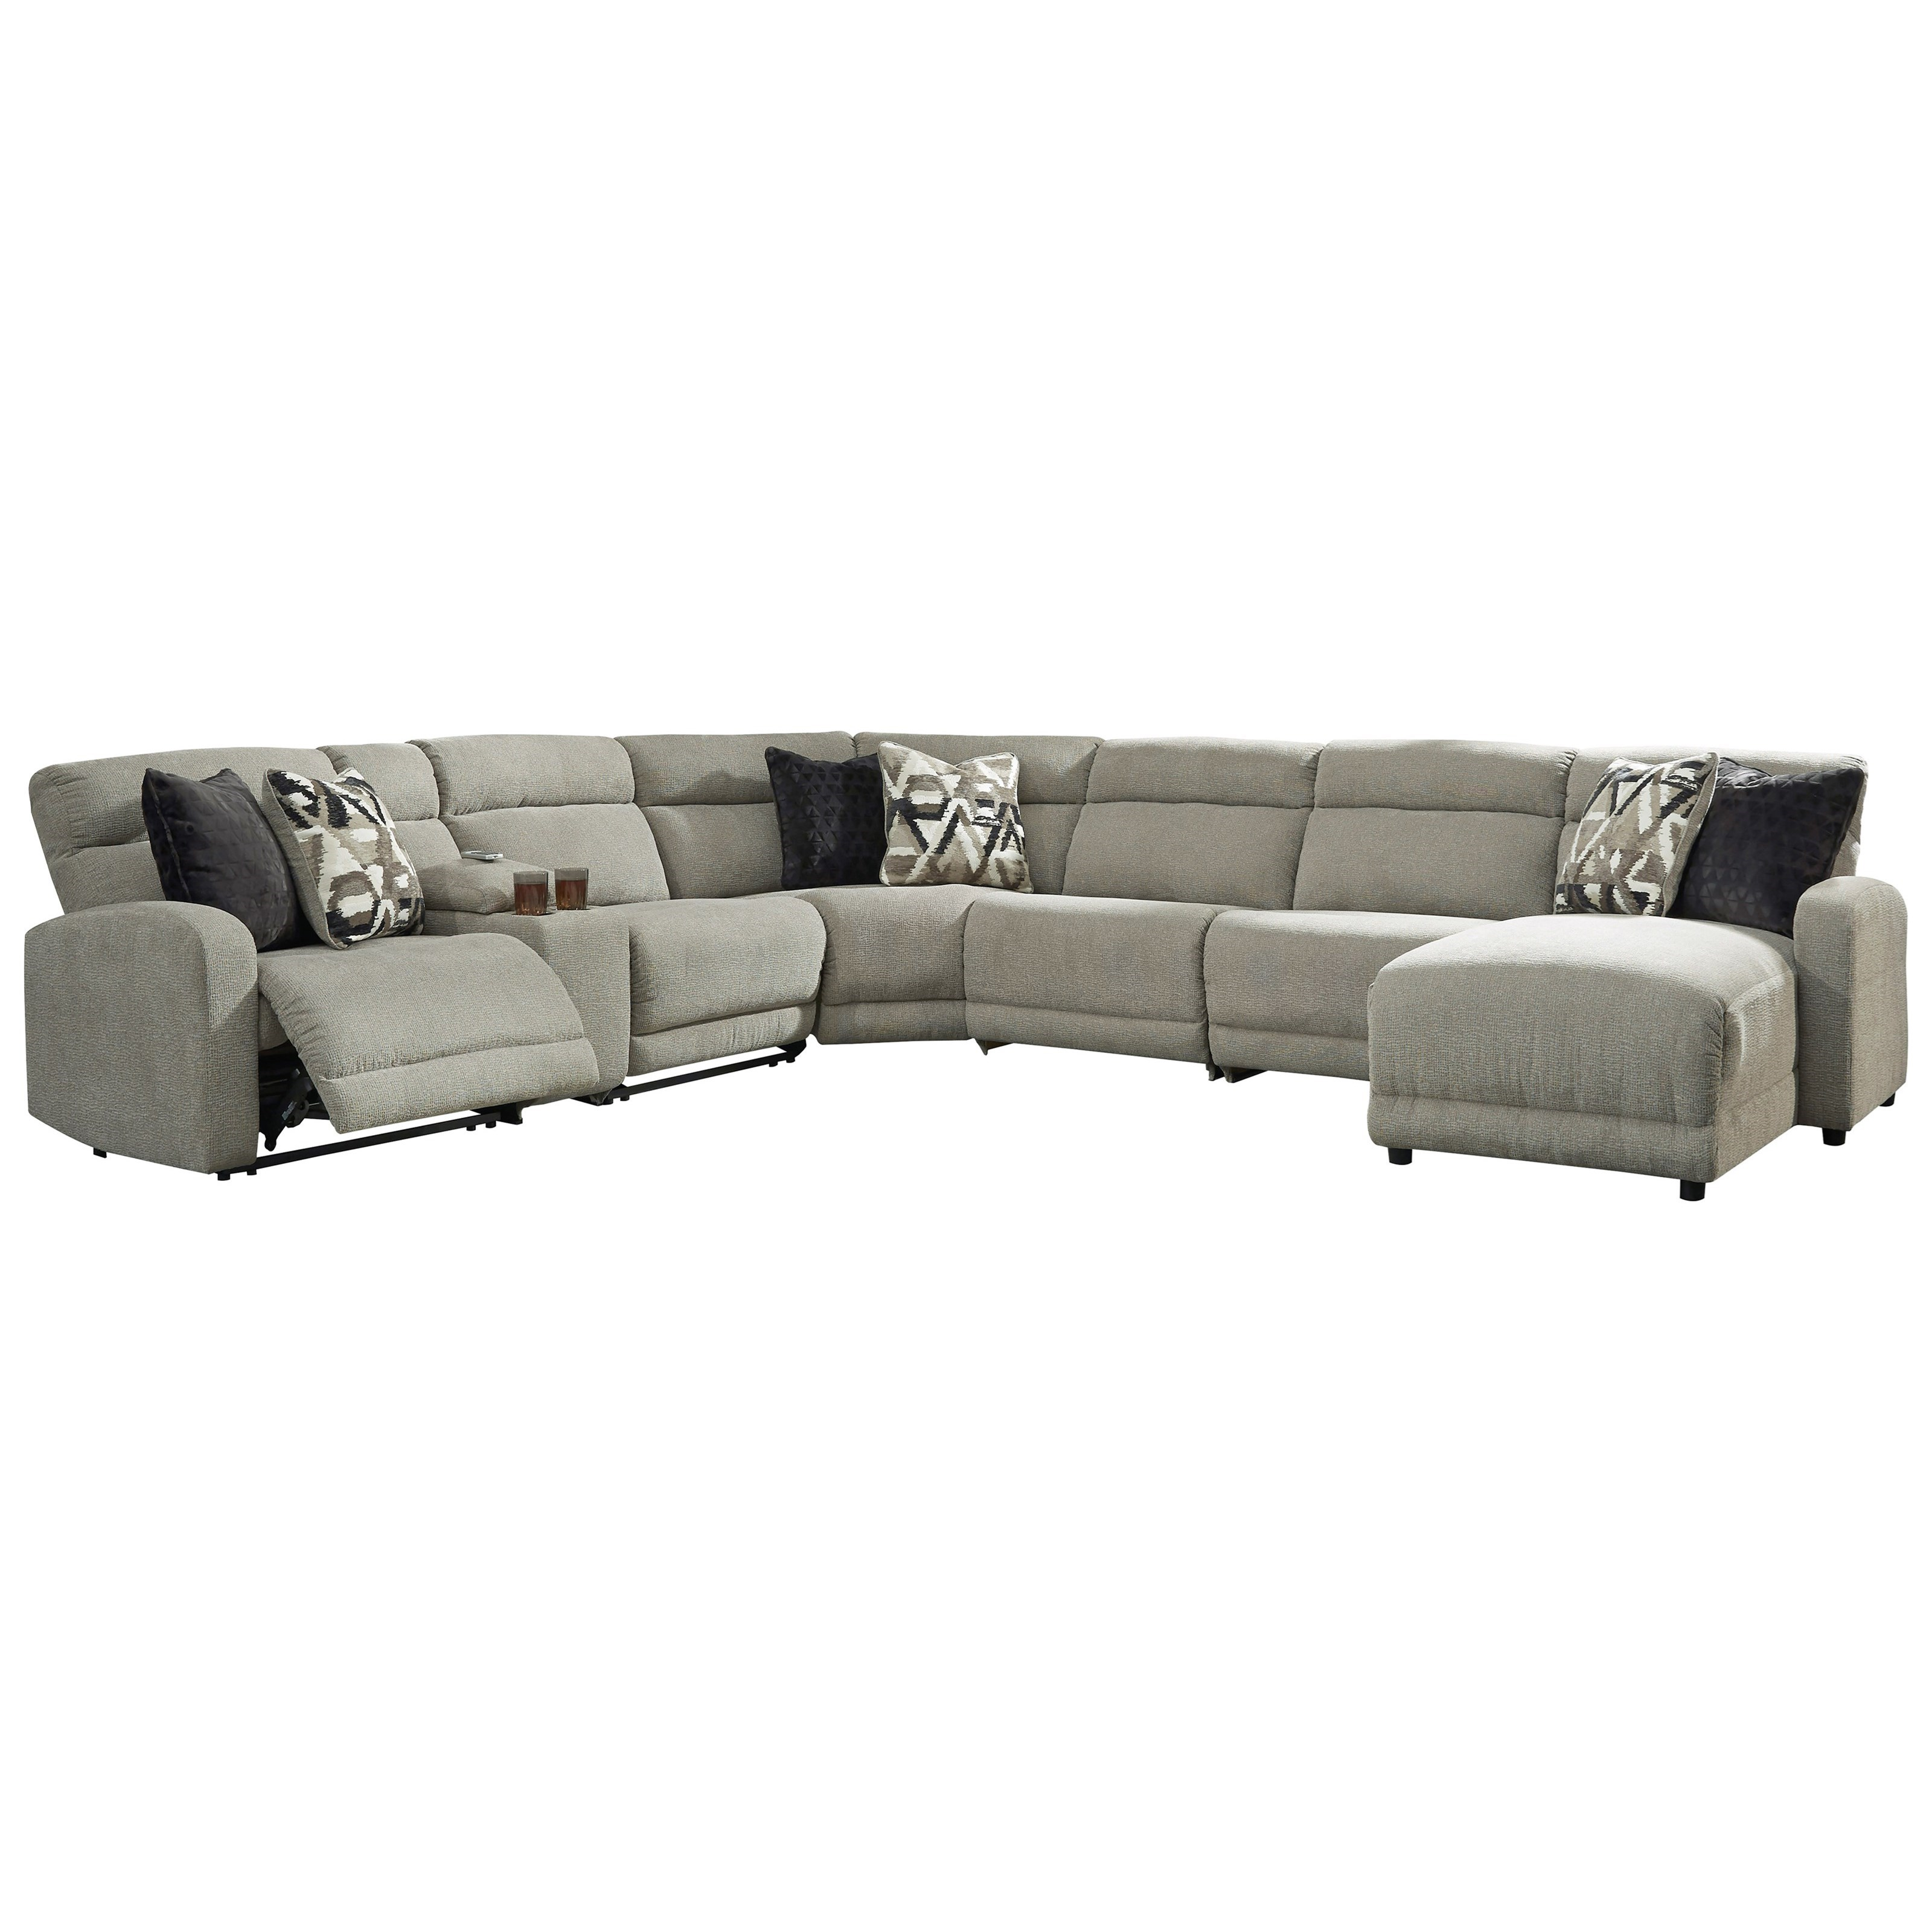 Colleyville Power Reclining Sectional by Signature Design by Ashley at Northeast Factory Direct